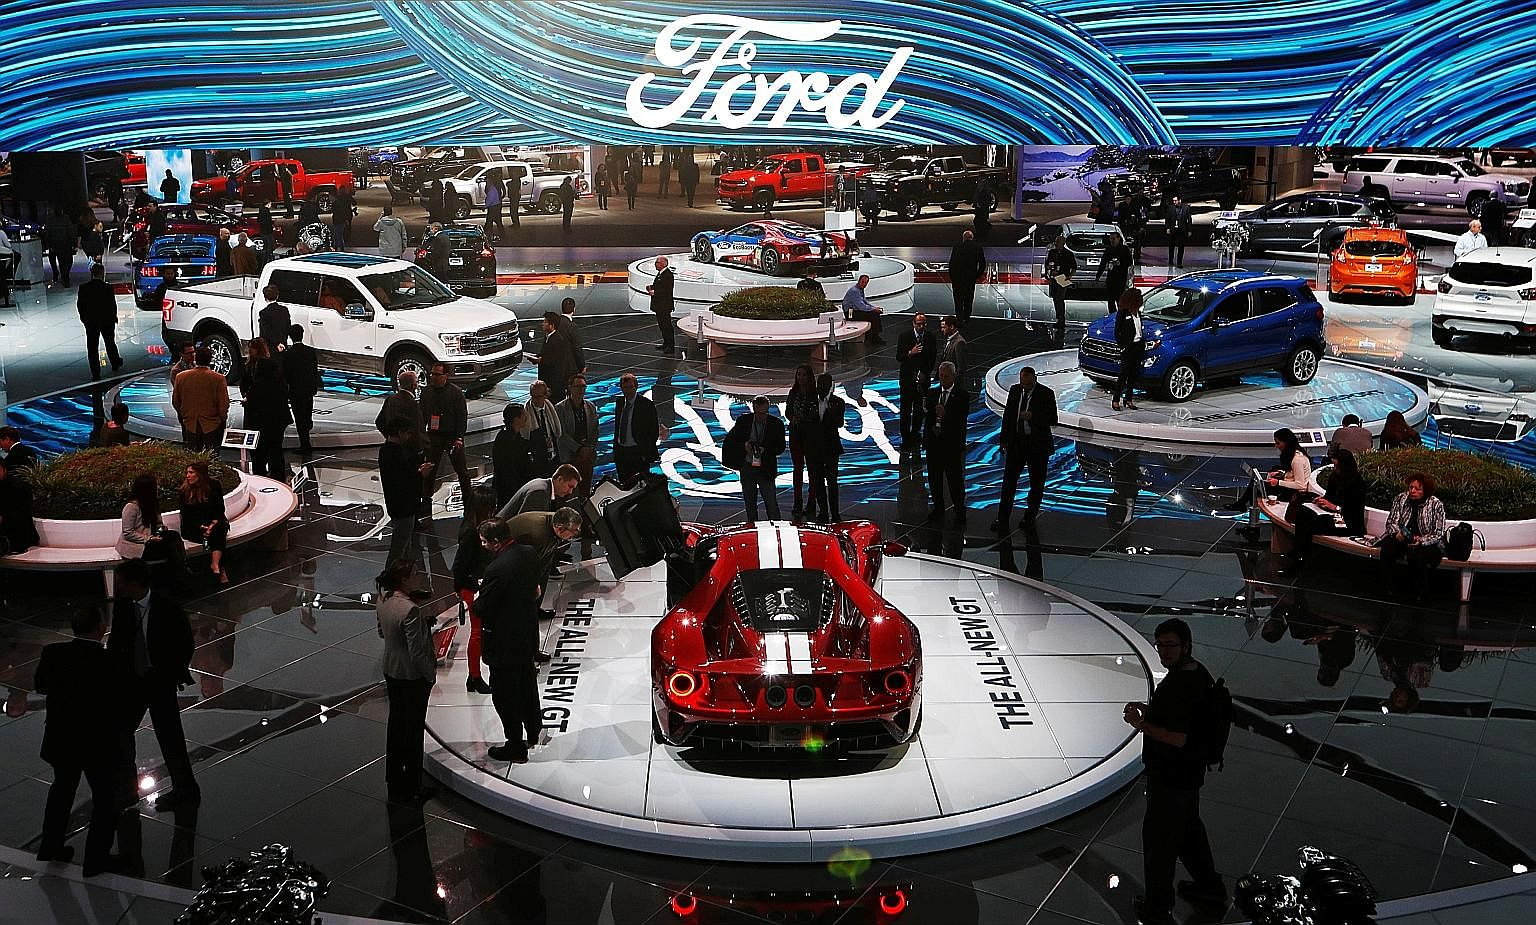 The Ford display at the North American International Auto Show in Detroit, Michigan, on Tuesday. The automaker's plan to invest $1 billion to build electric vehicles and create 700 jobs in Michigan is the latest sign that American companies expect th